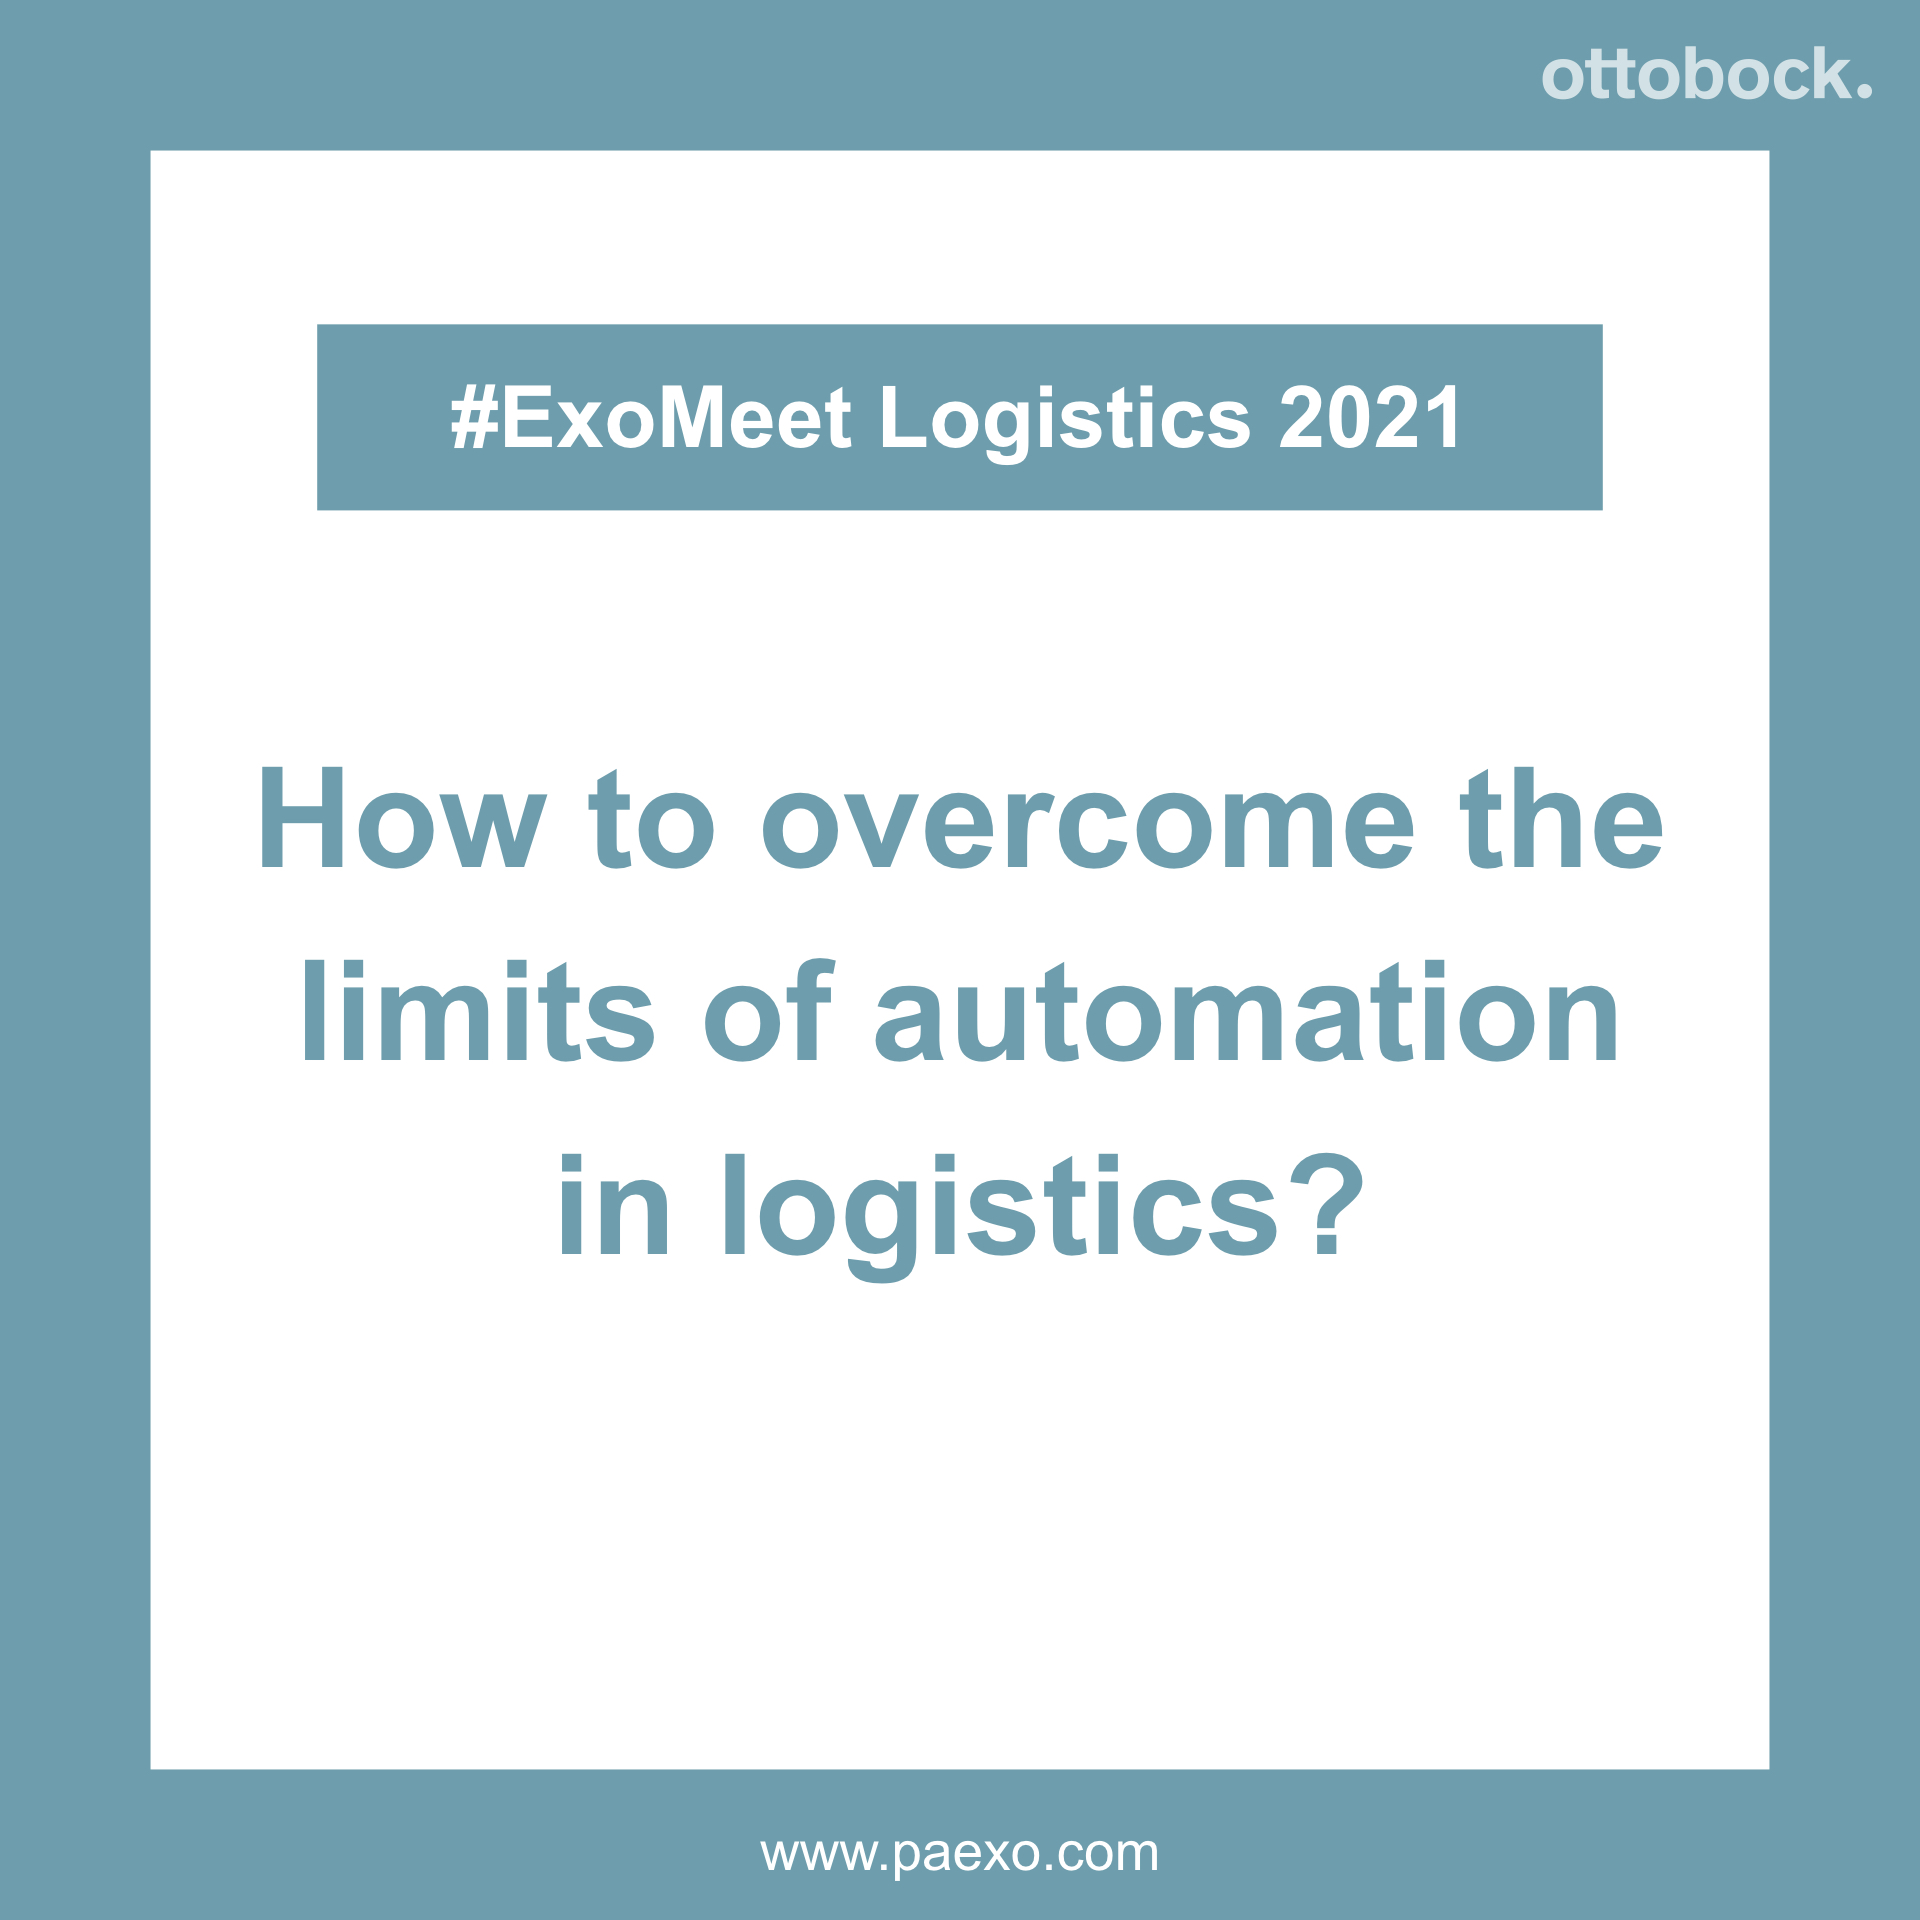 Automation in logistics